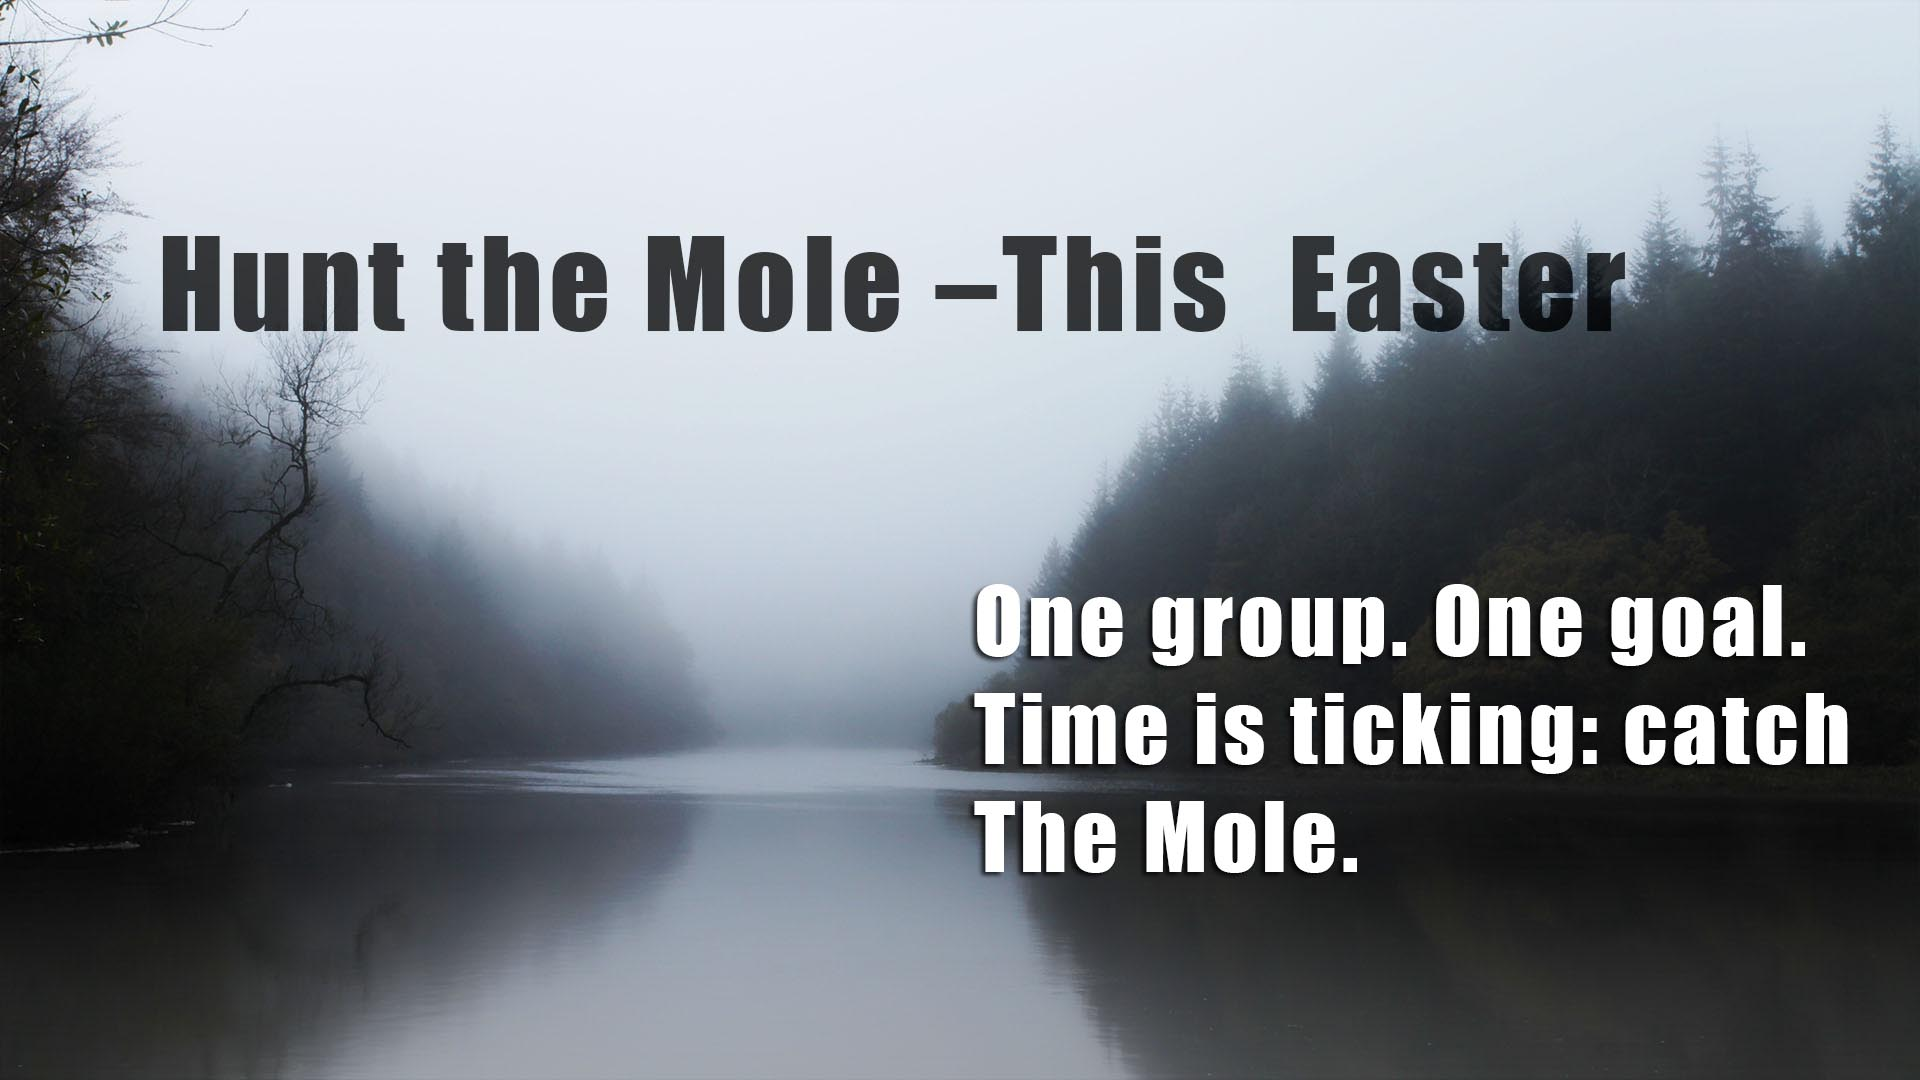 Flyer image for Hunt the mole event at Mulvarra House